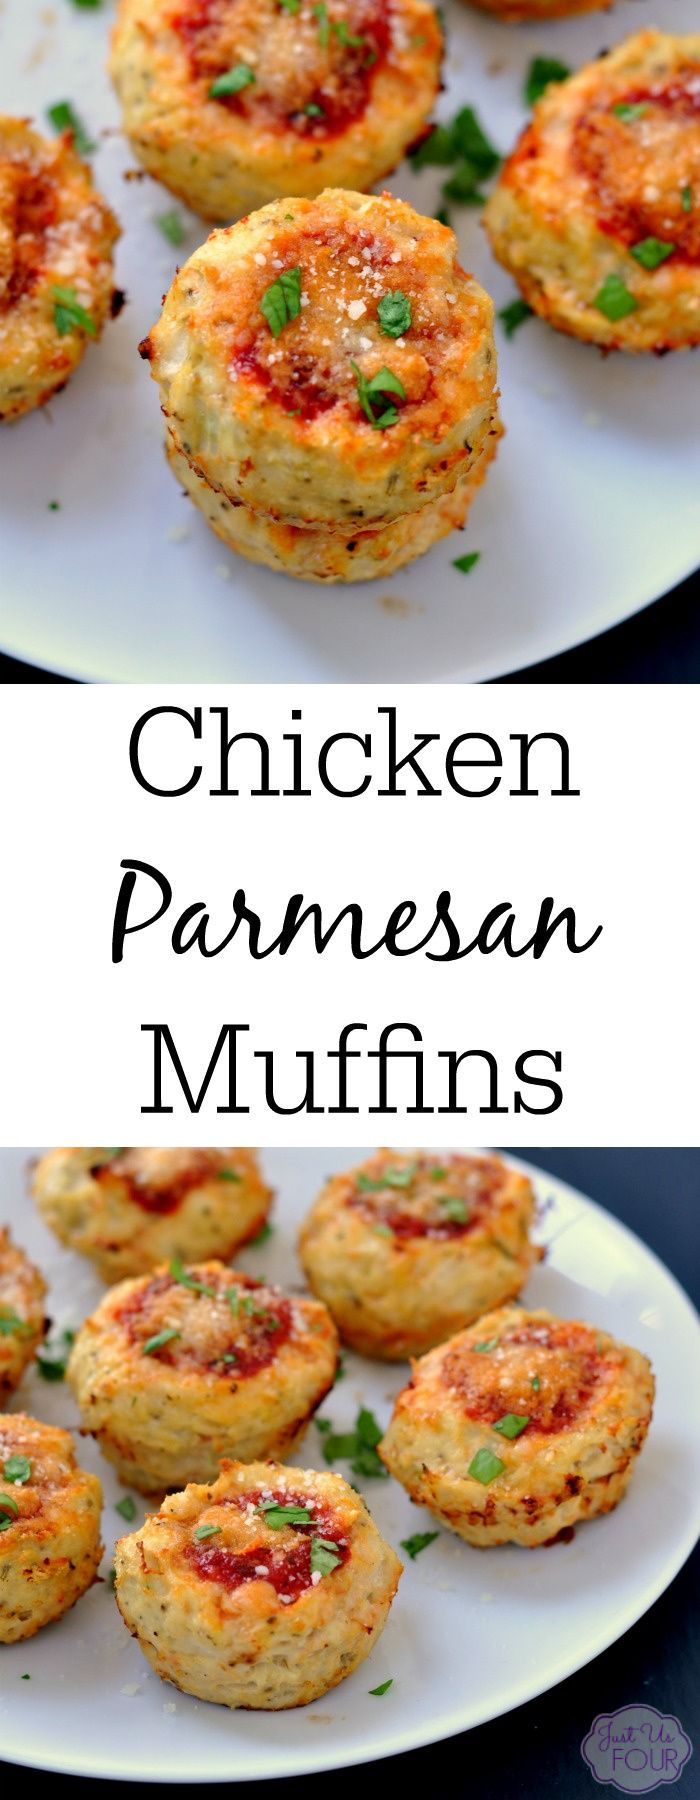 Chicken Parmesan muffins are the perfect weeknight meal that everyone in your family will love!